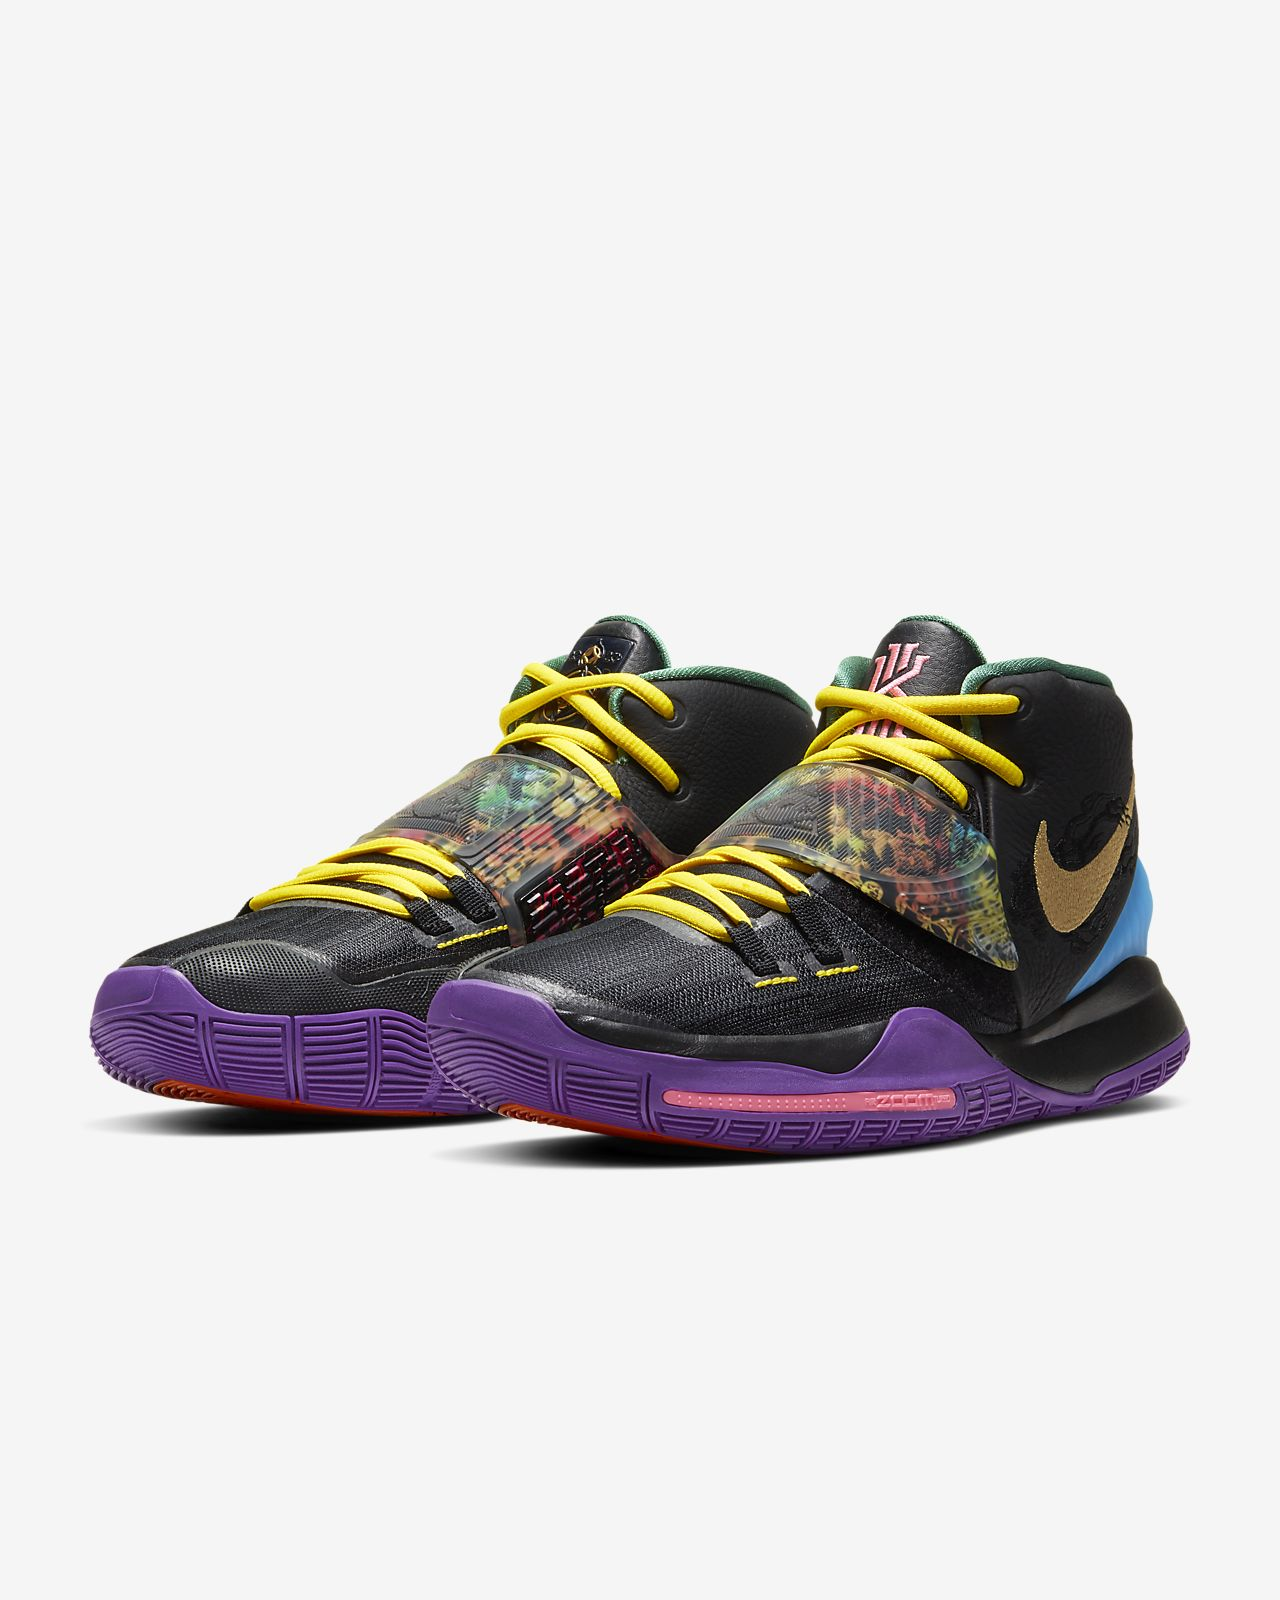 Kyrie 6 'Chinese New Year' Basketball Shoe